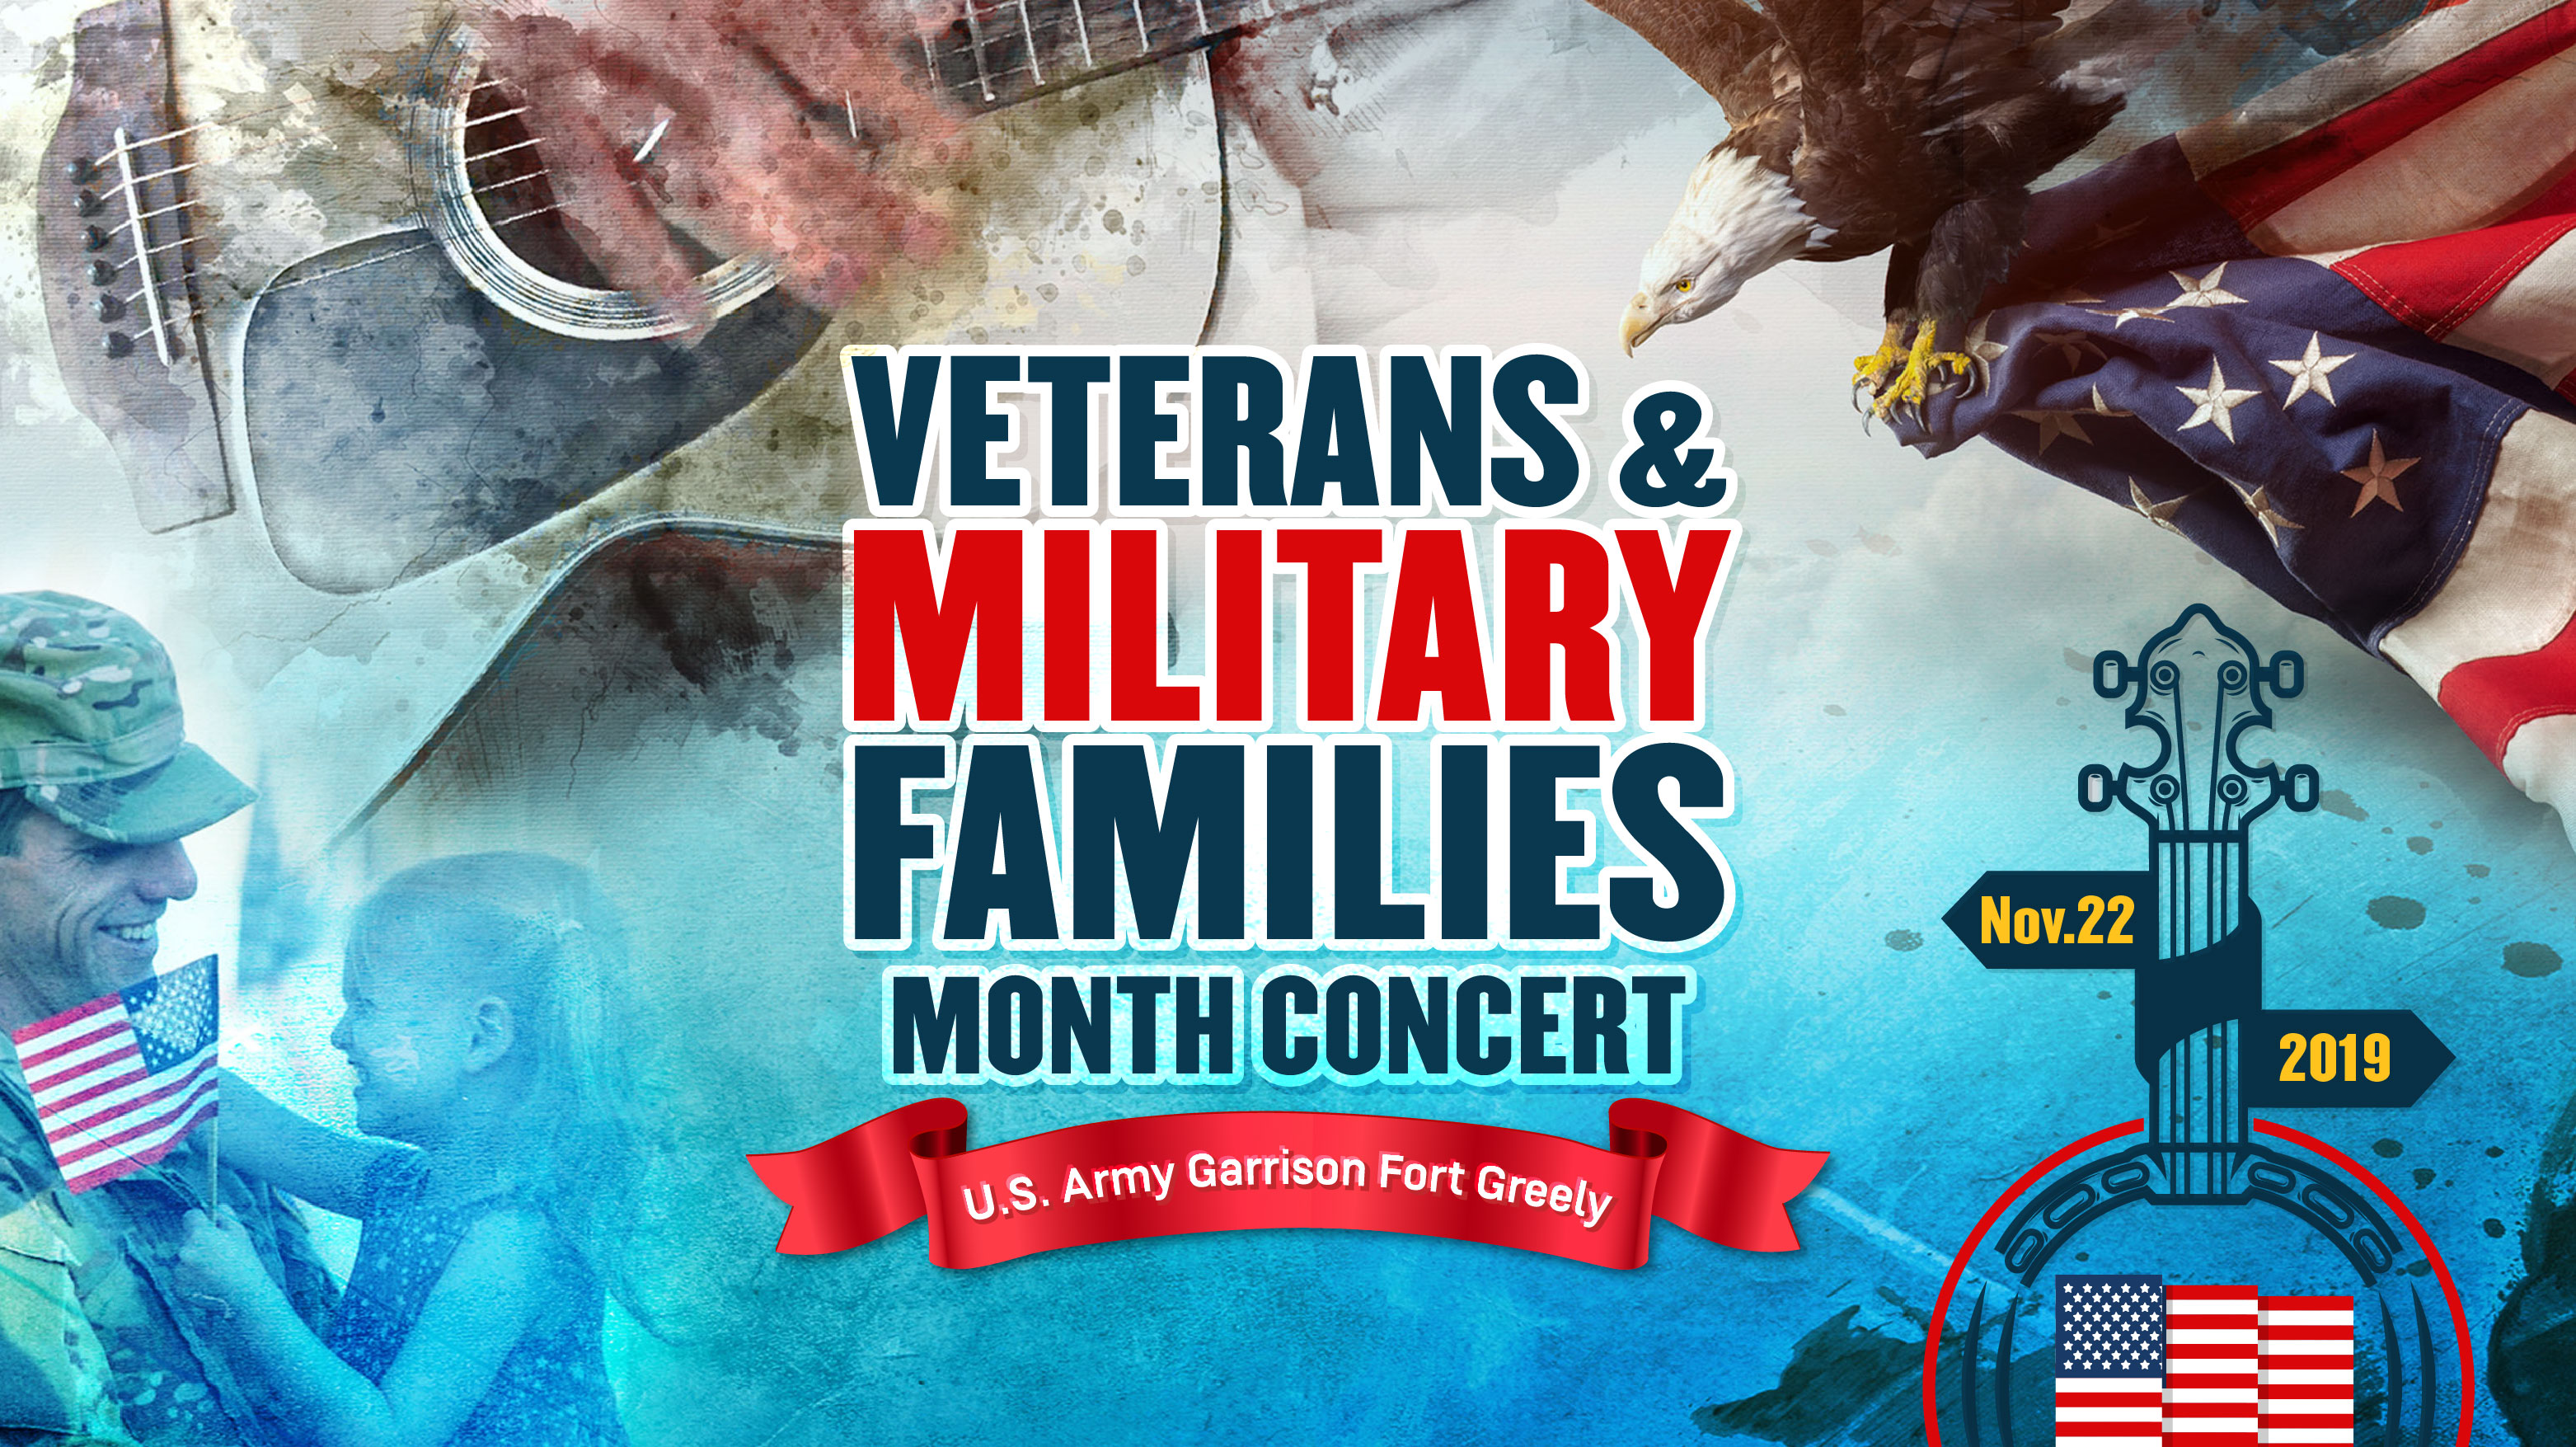 Veterans and Military Families Month Concert